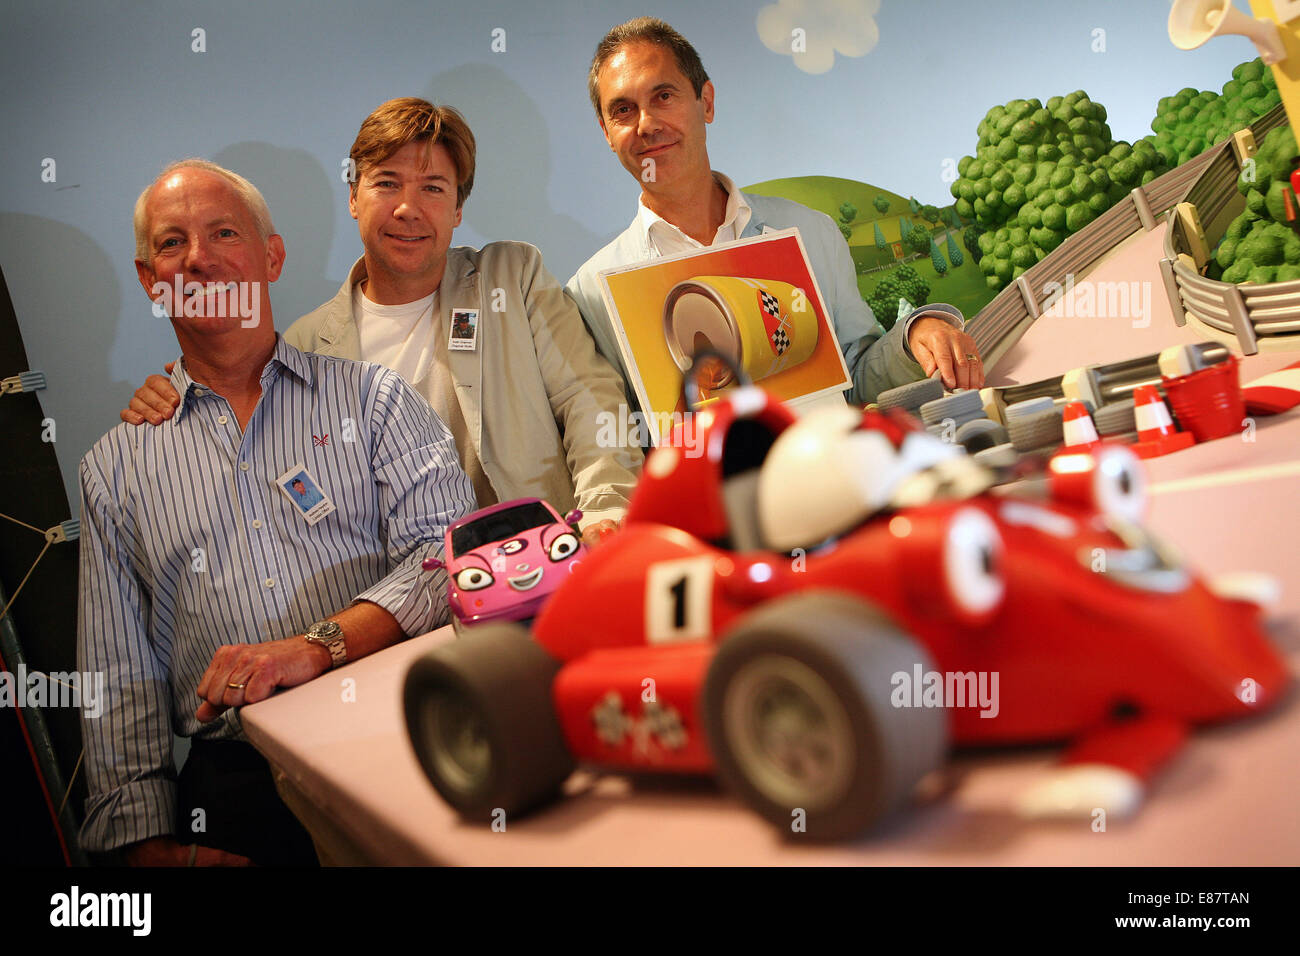 Co-founders of Chapman Entertainment Ltd L-R Andrew Haydon, Keith Chapman and Greg Lynn. - Stock Image